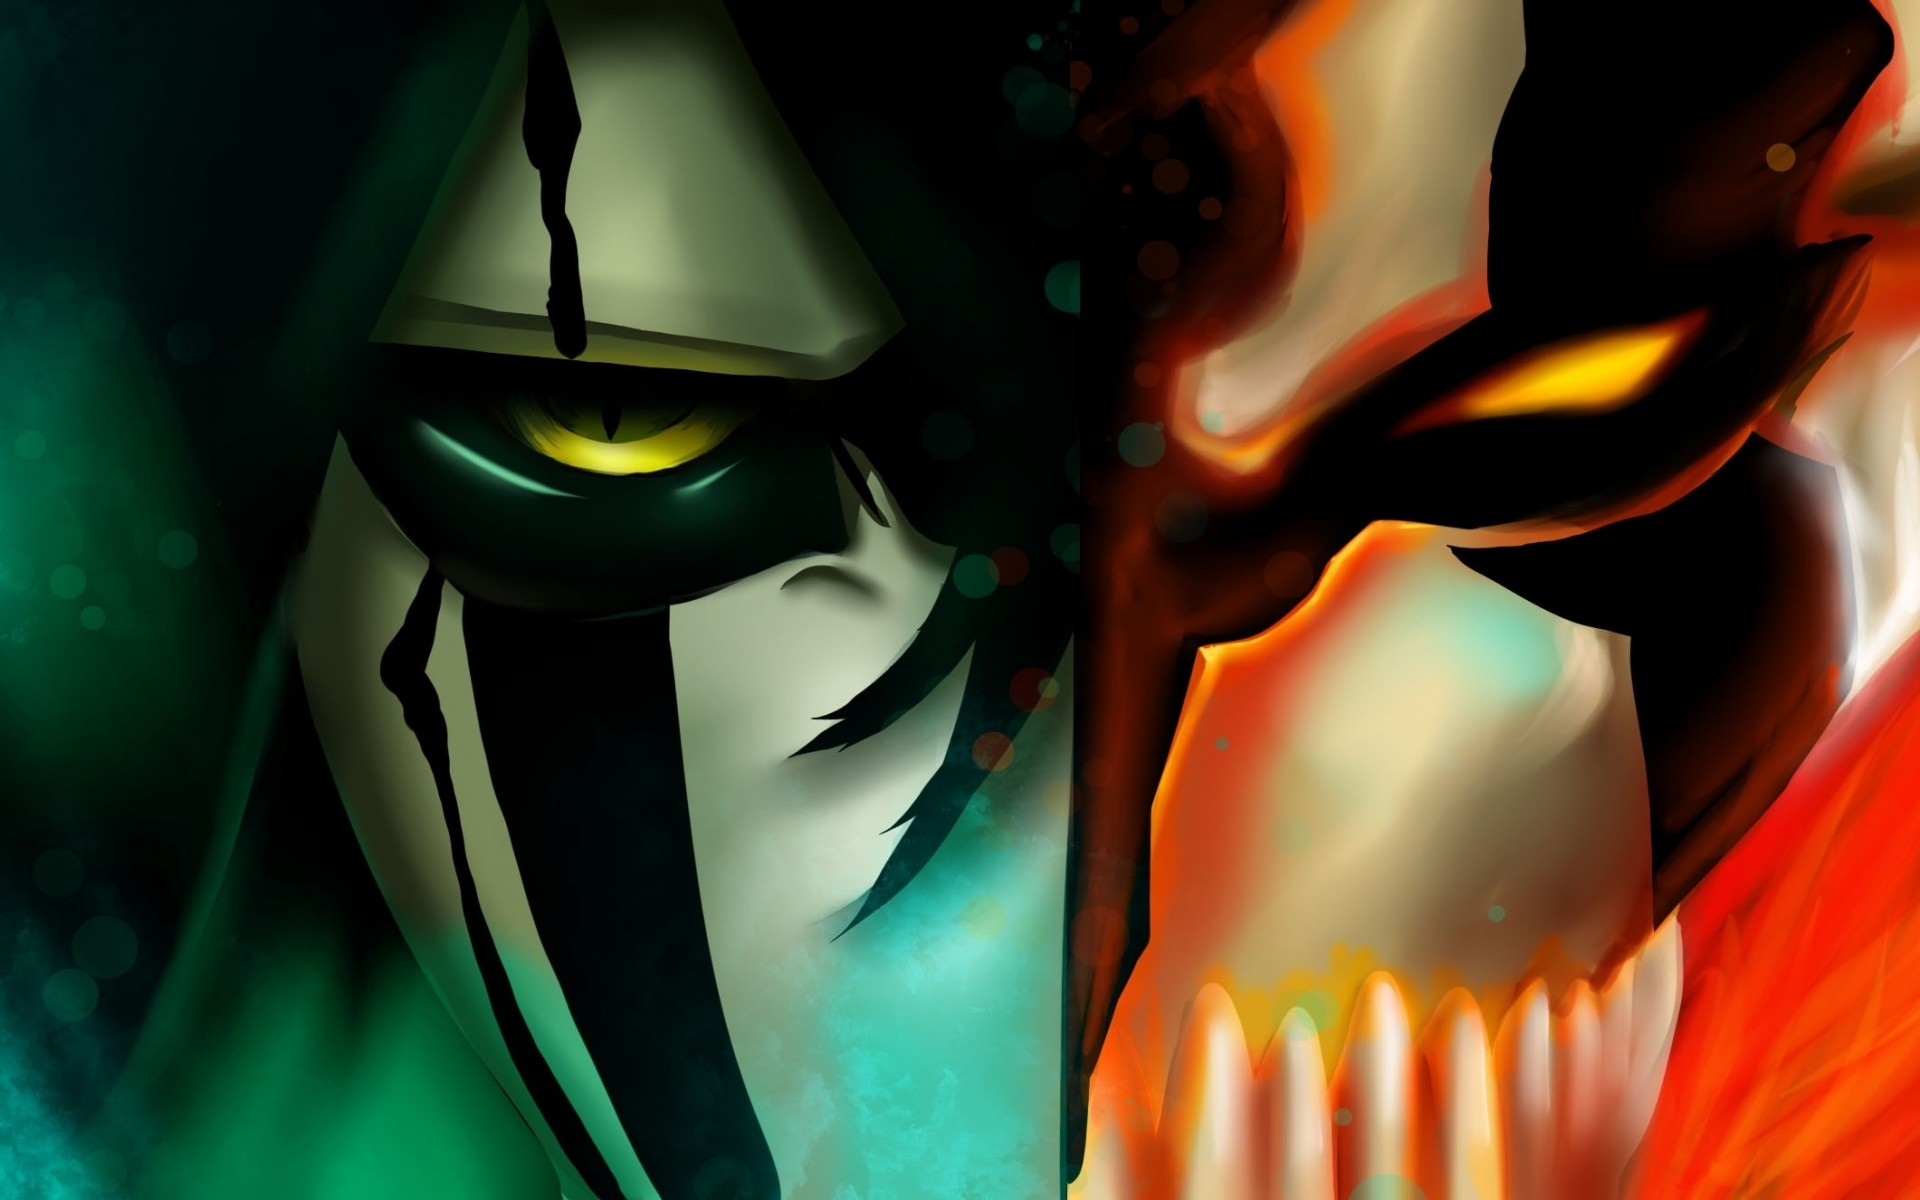 Paintings Bleach Kurosaki Ichigo Espada Digital Art Fan Ulquiorra Cifer Vastolorde HD Wallpapers